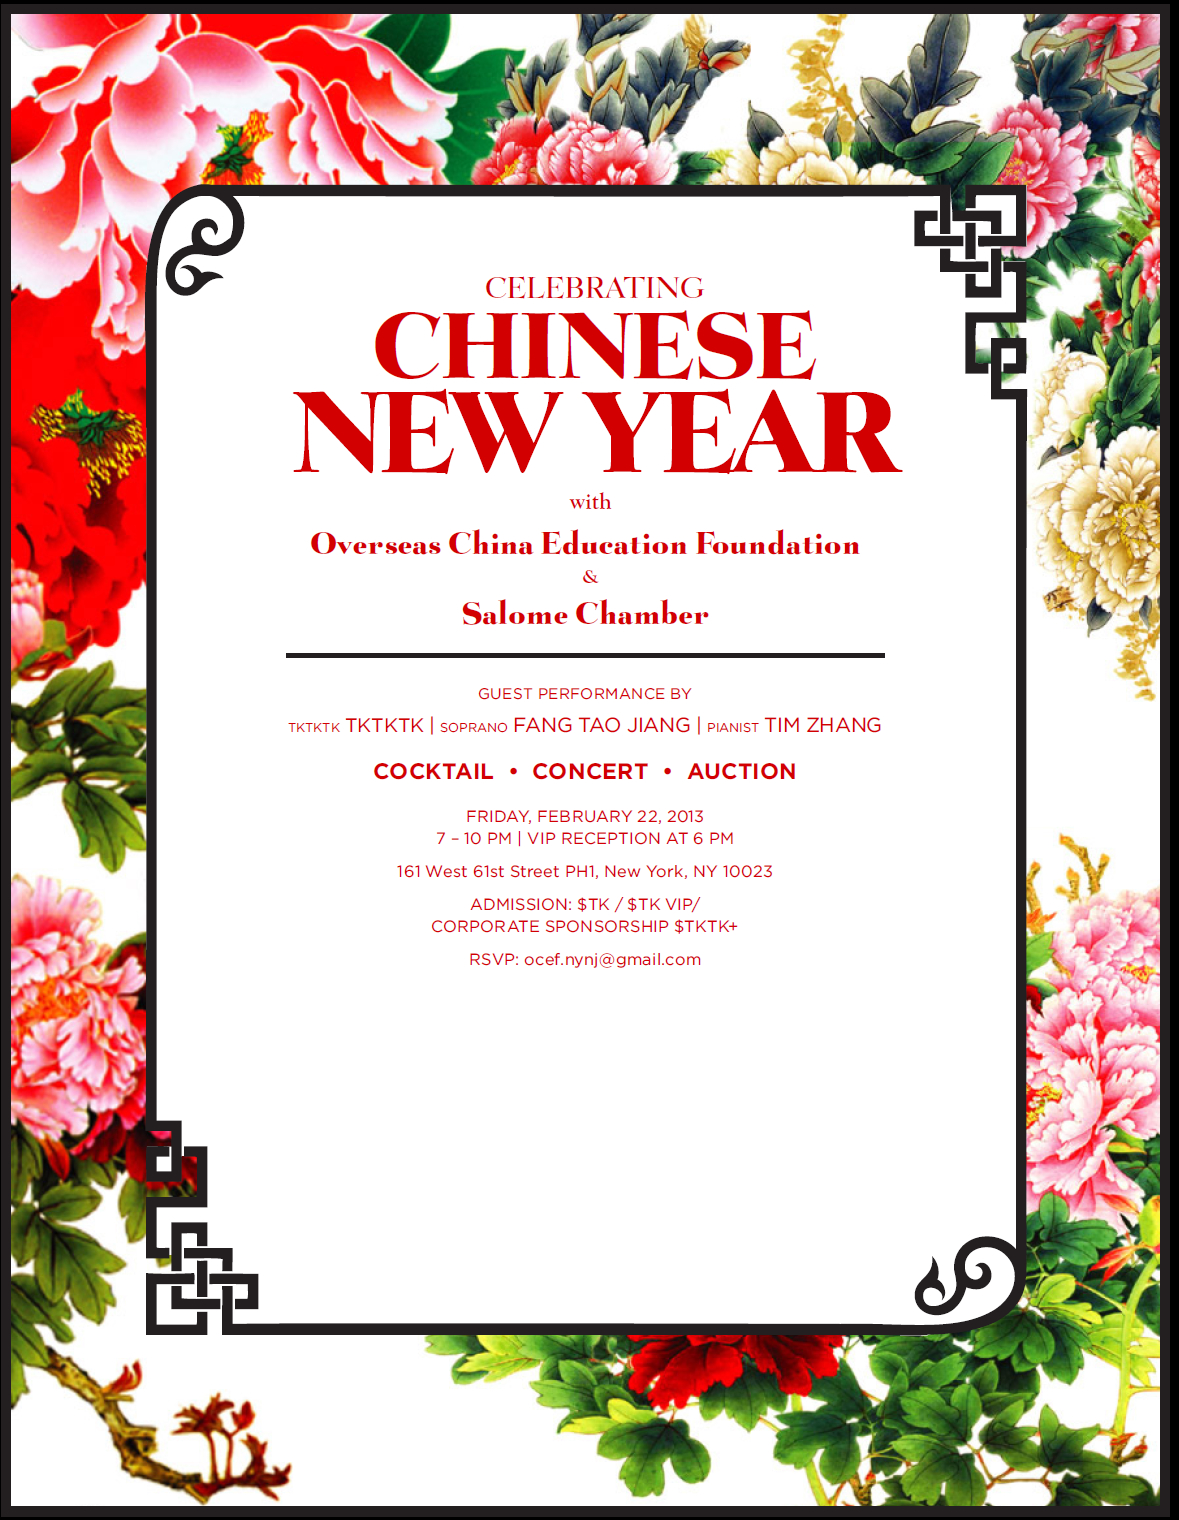 2014 ocef ny chapter chinese new year benefit concert and auction